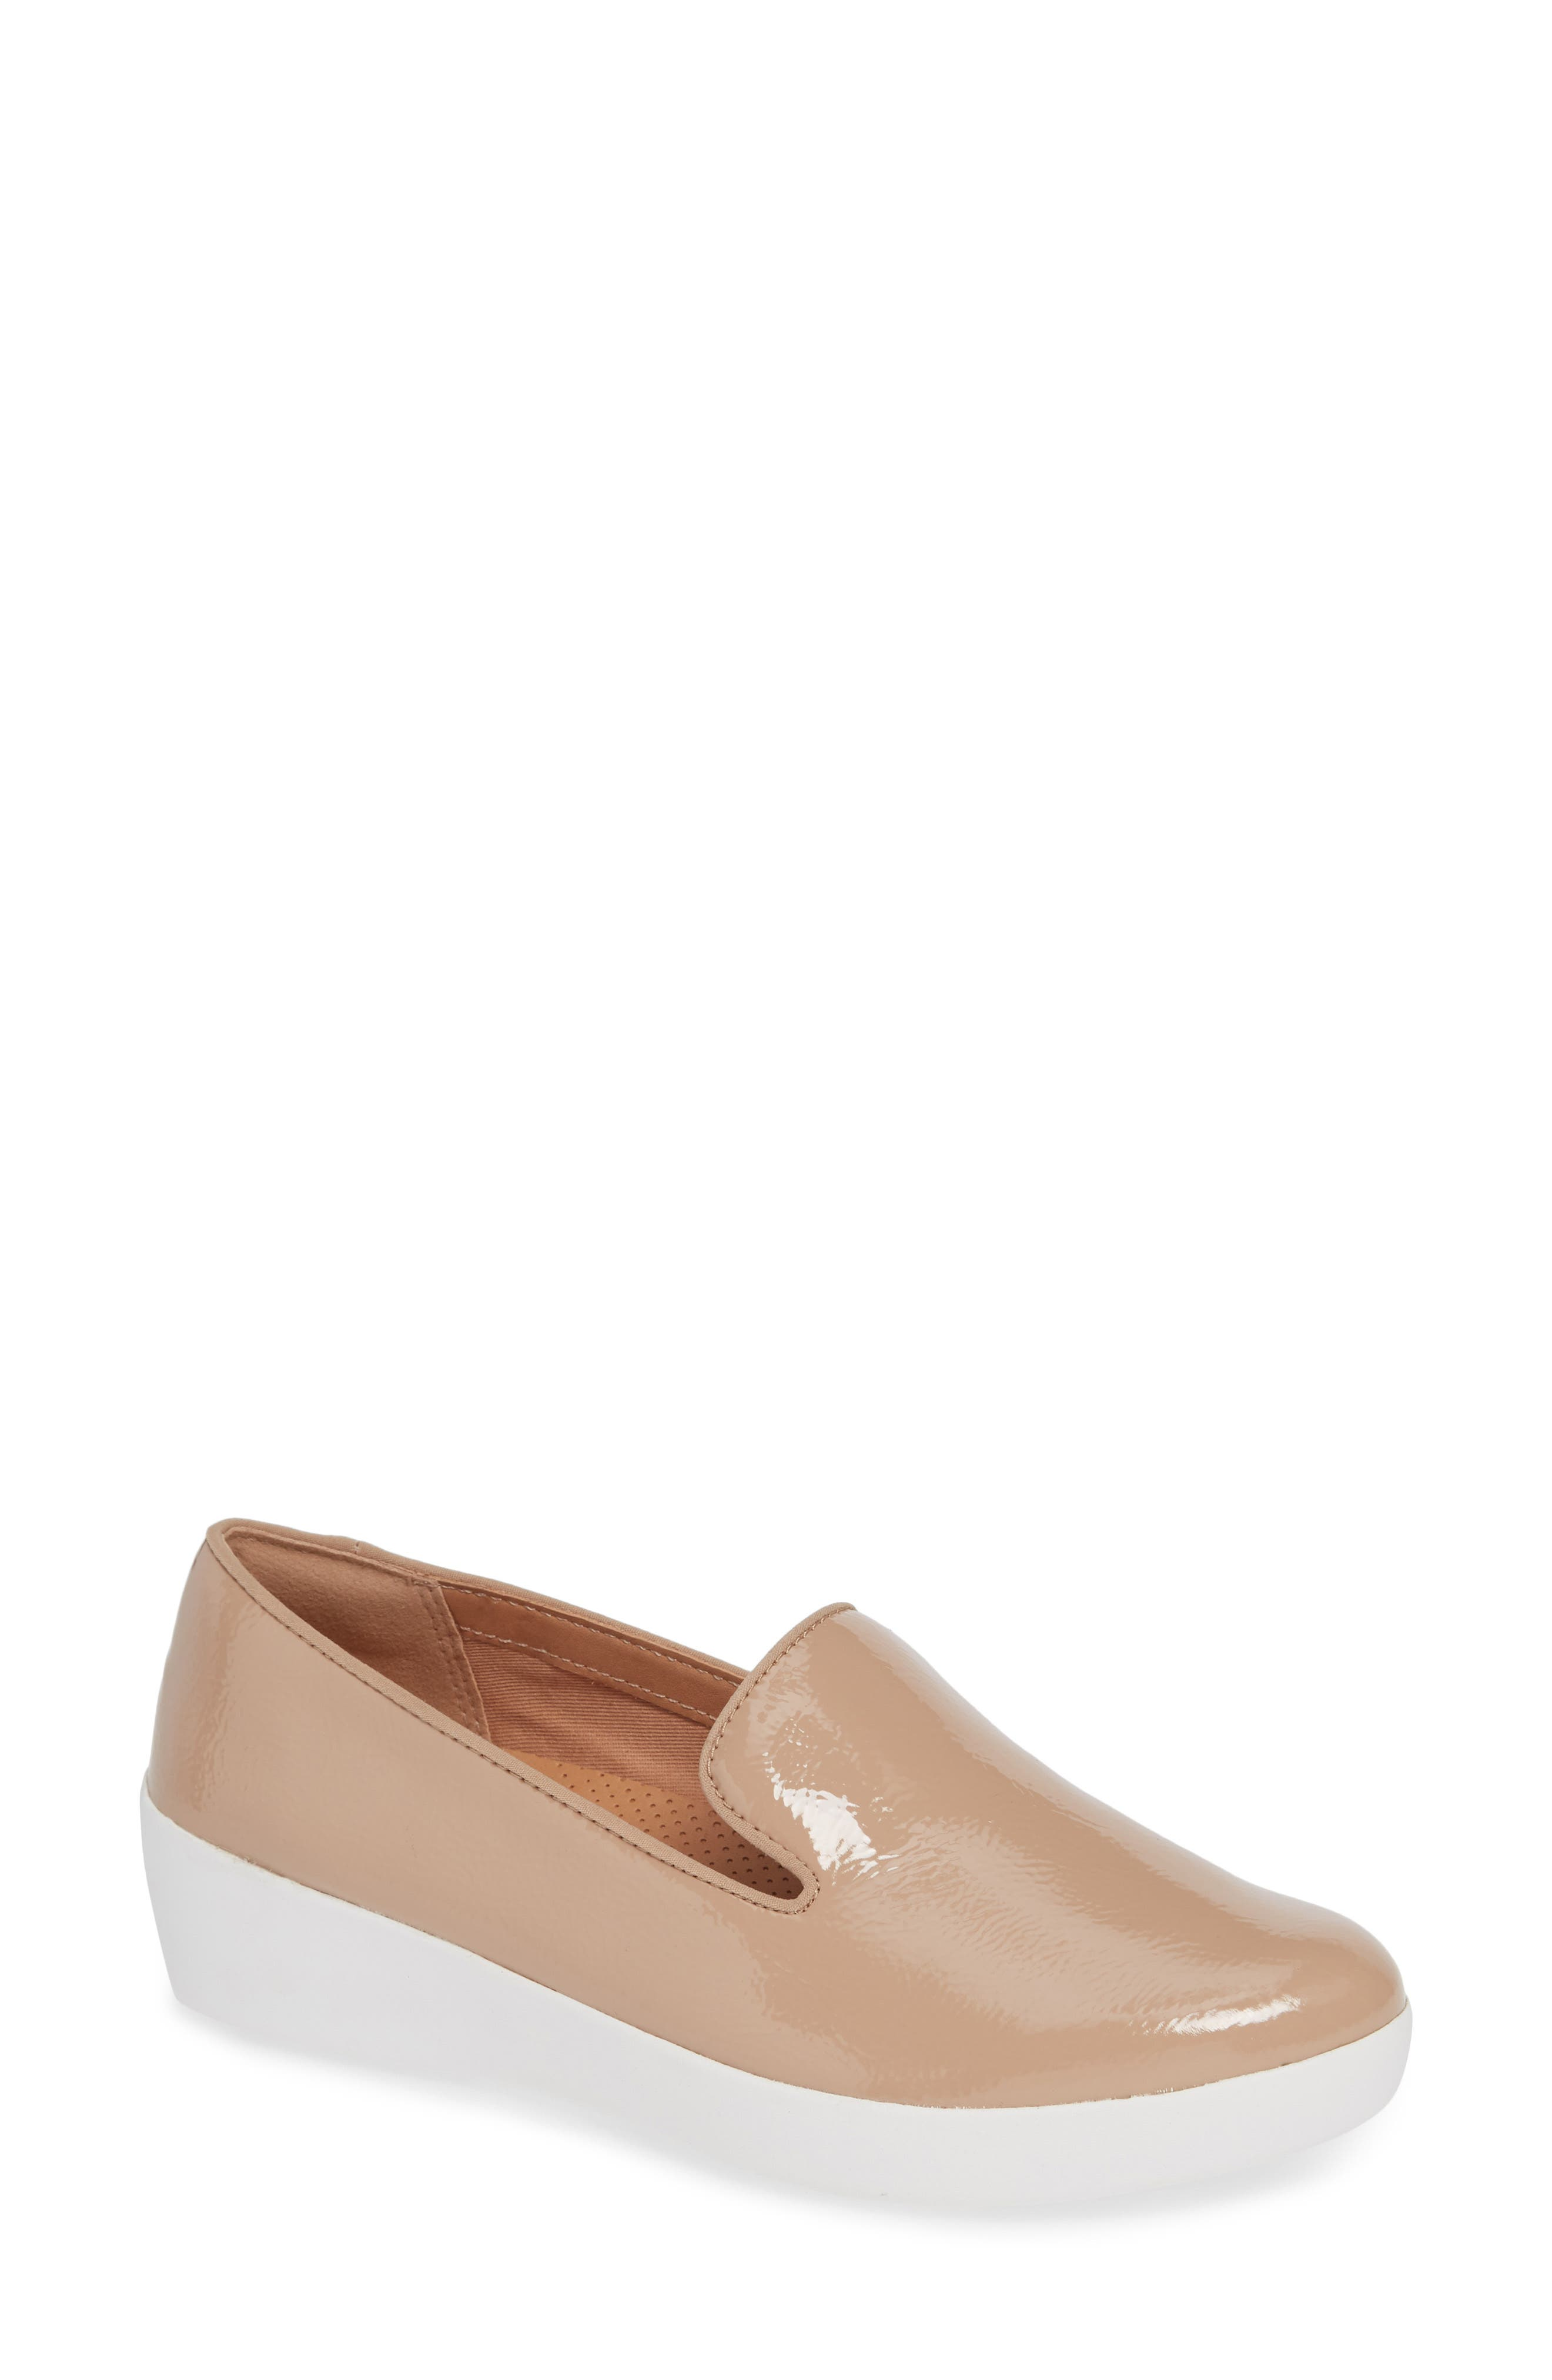 Audrey Smoking Slipper,                         Main,                         color, TAUPE PATENT LEATHER